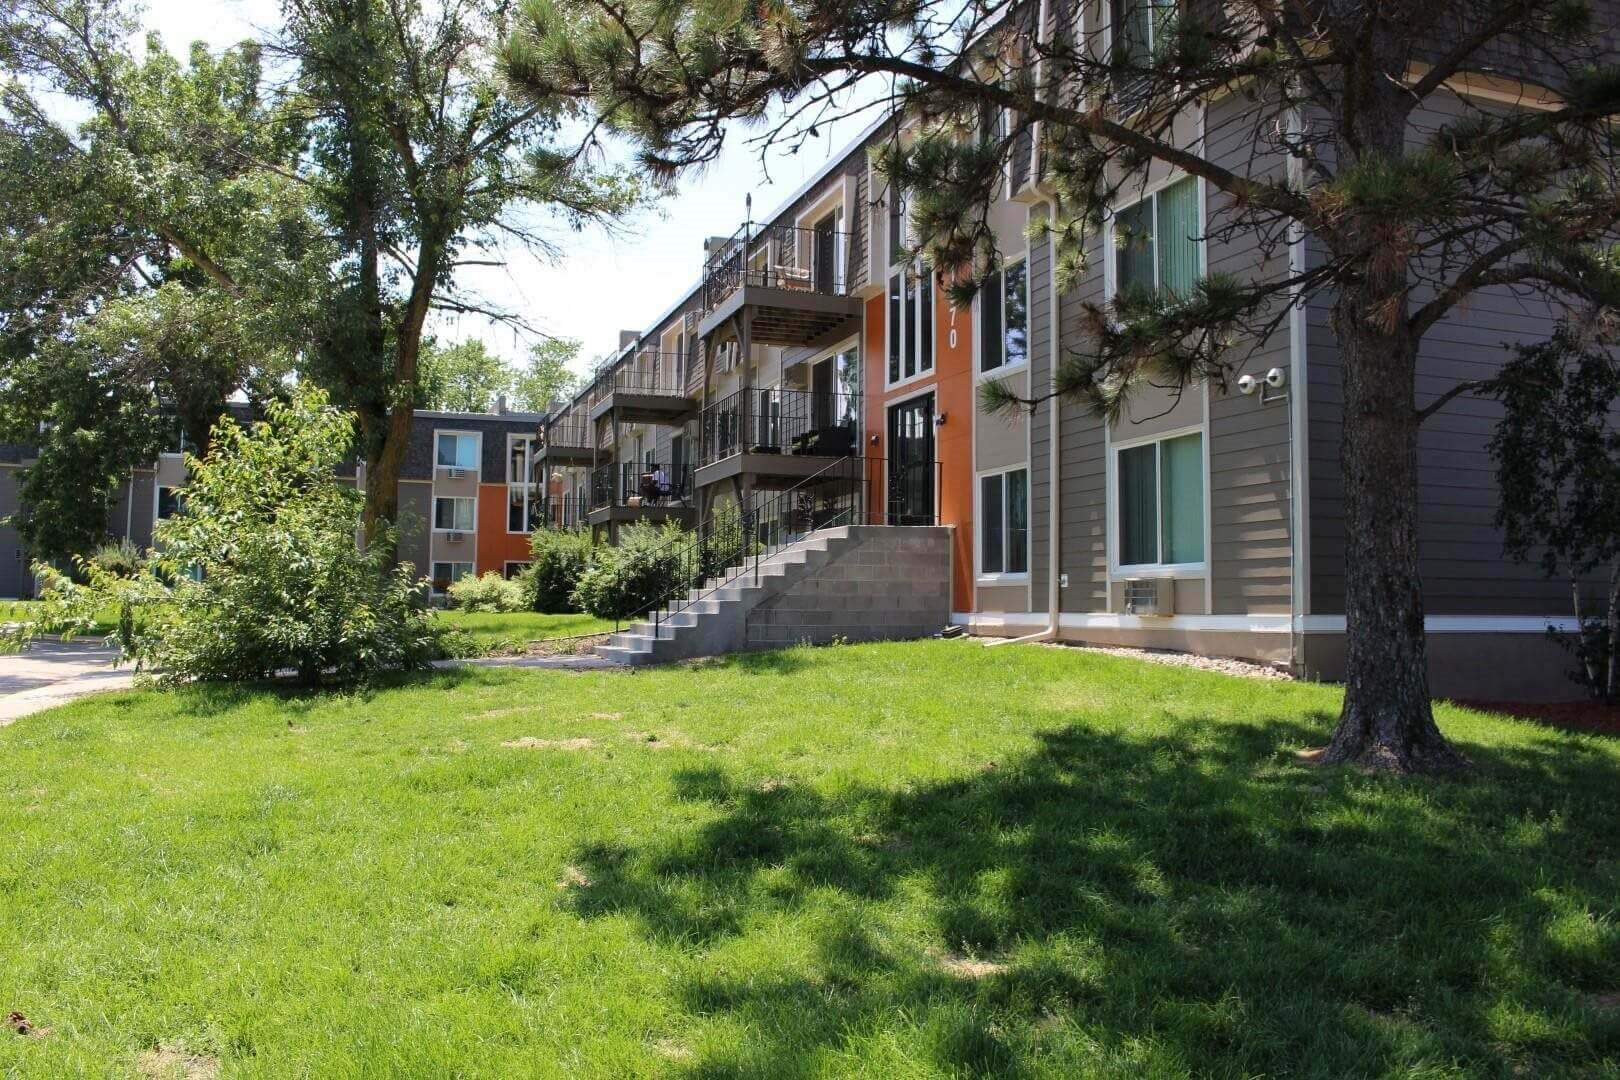 Meticulous Landscaping with Beautiful Scenery at Terra Pointe Apartments, St. Paul, 55119